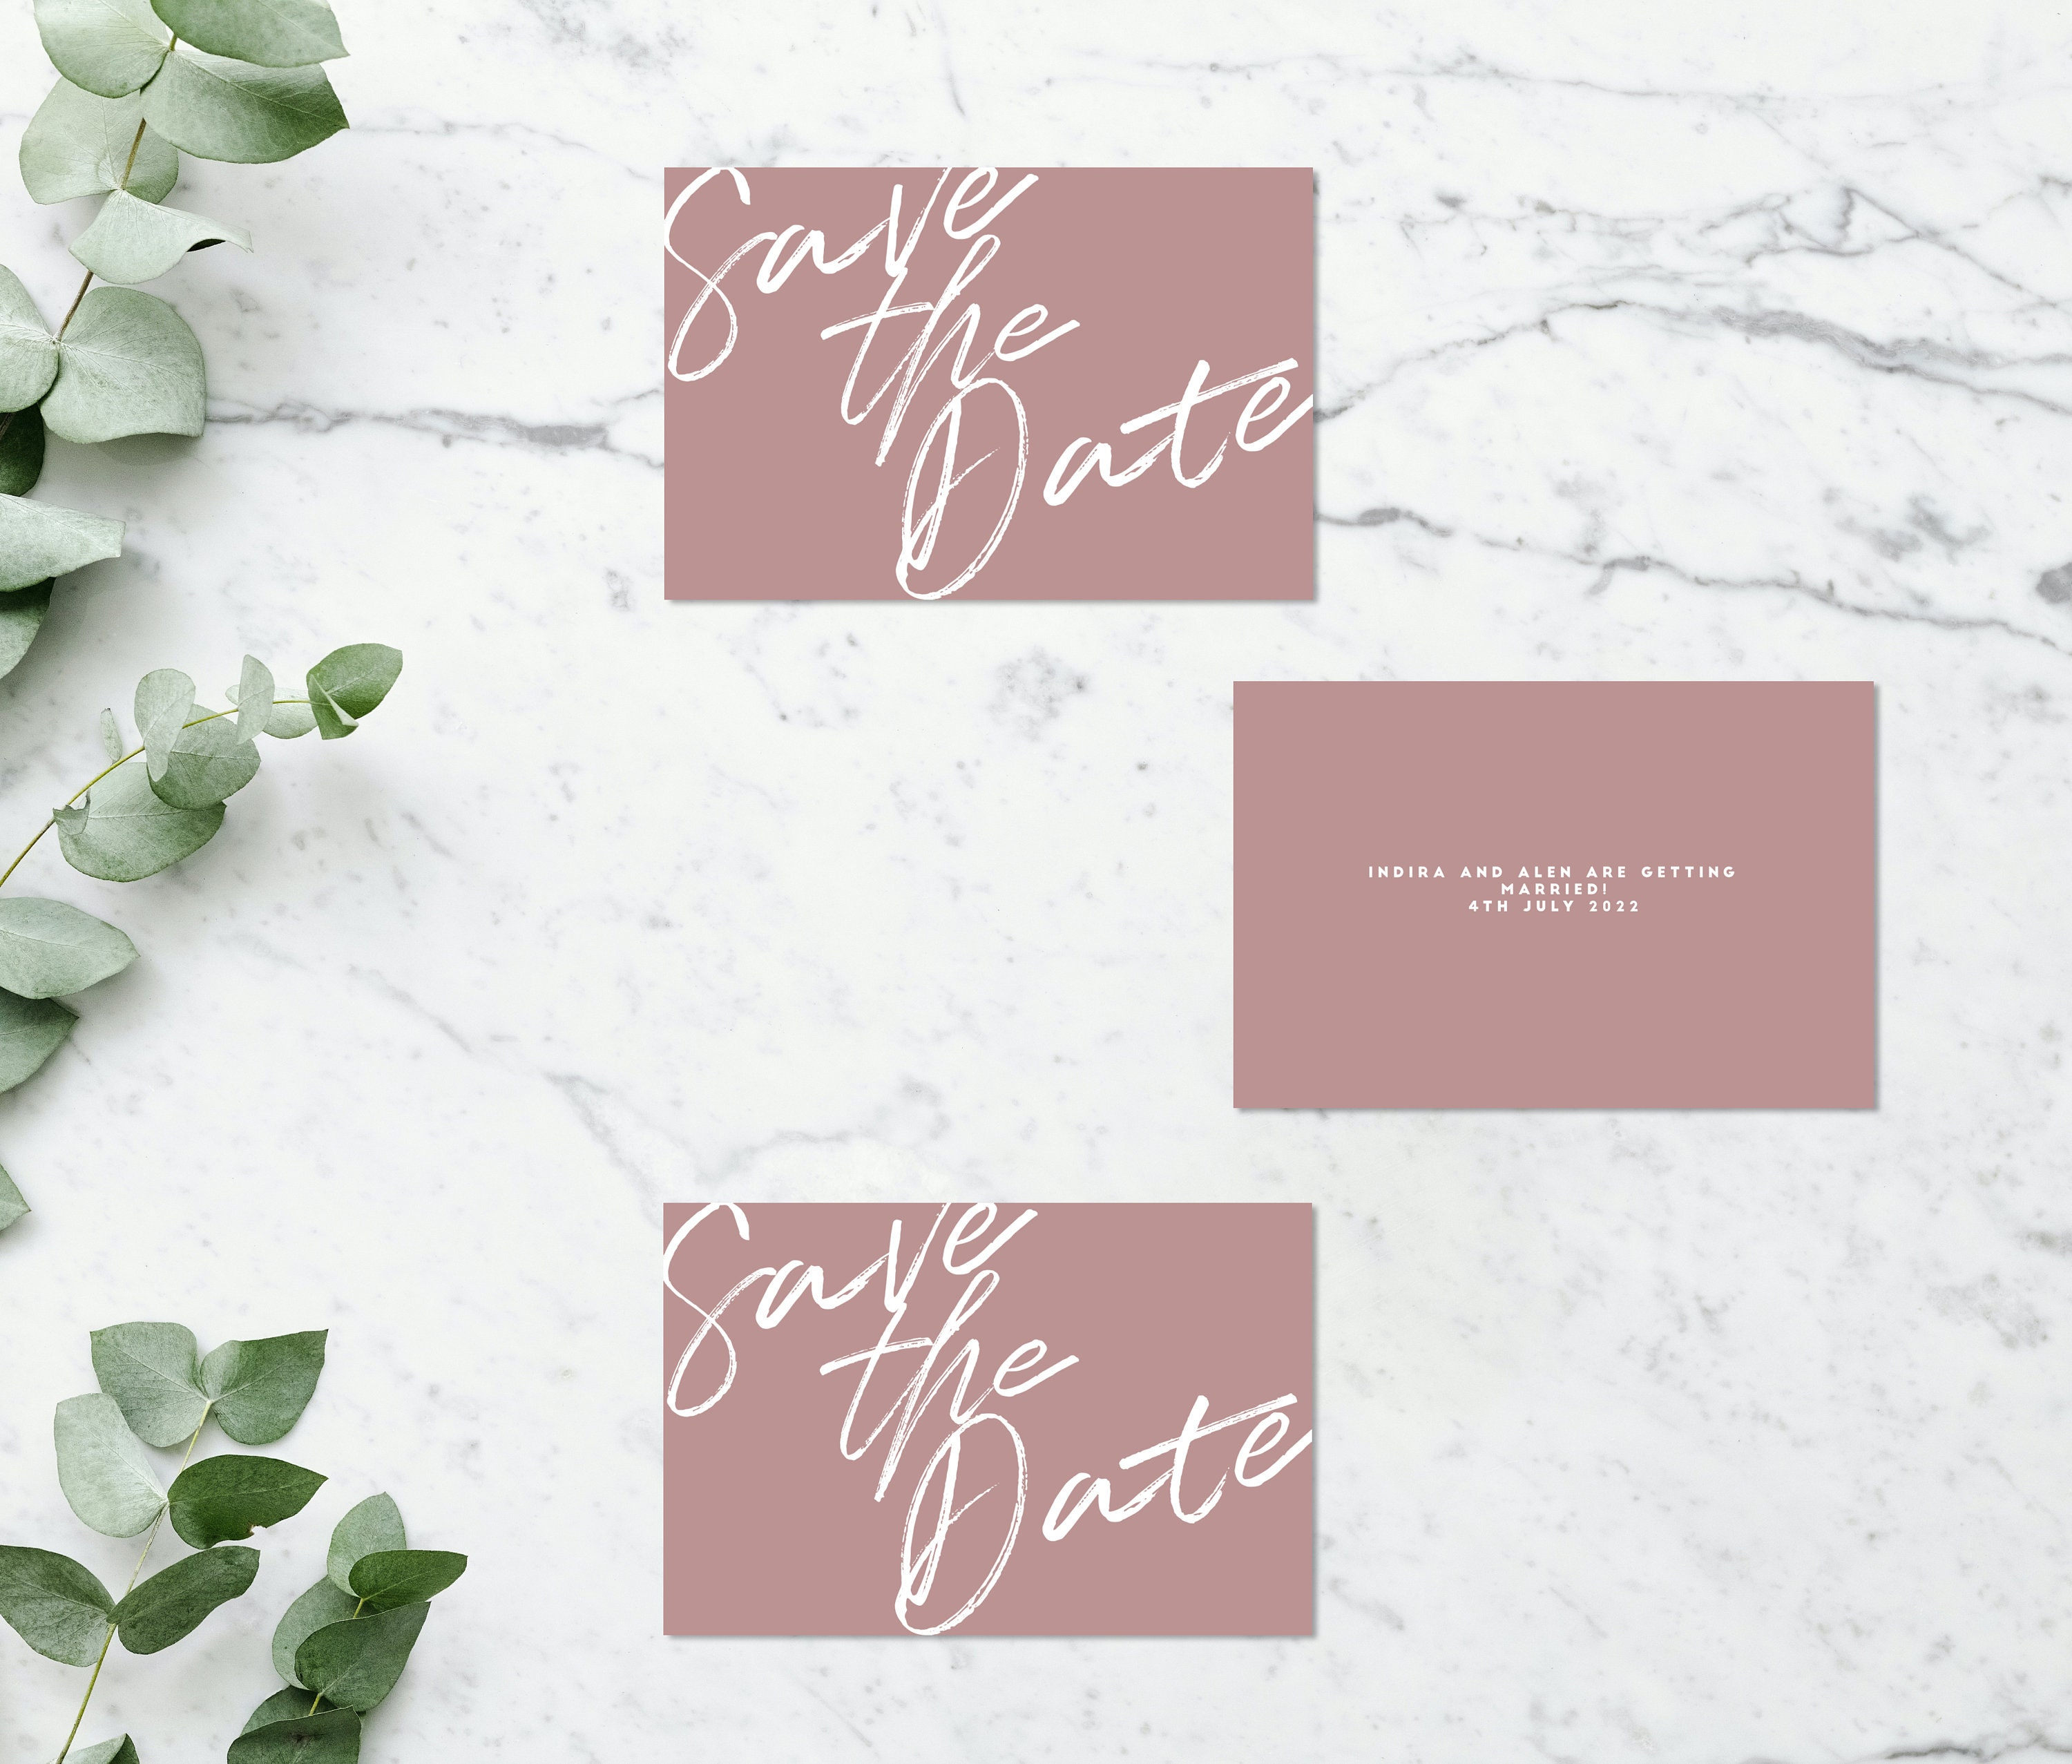 Flat lay photograph showing 3 wedding save the date cards (some front-facing, some showing the reverse). Each card is blush pink.